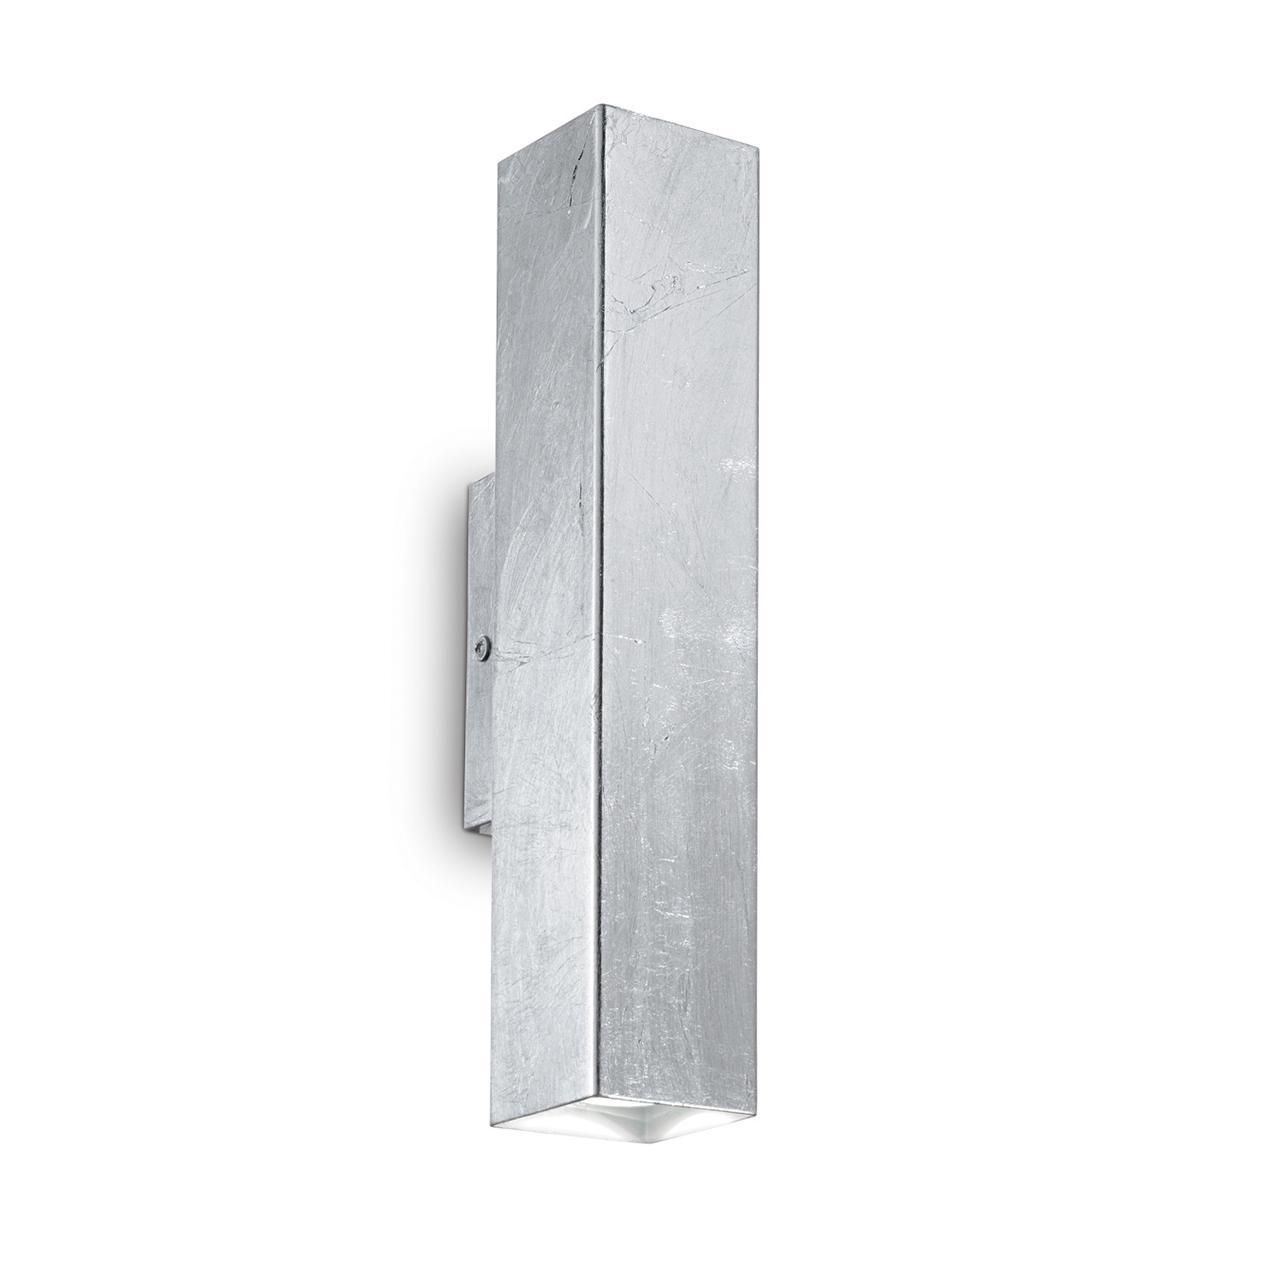 Бра Ideal Lux Sky AP2 Argento бра ideal lux sky ap2 oro